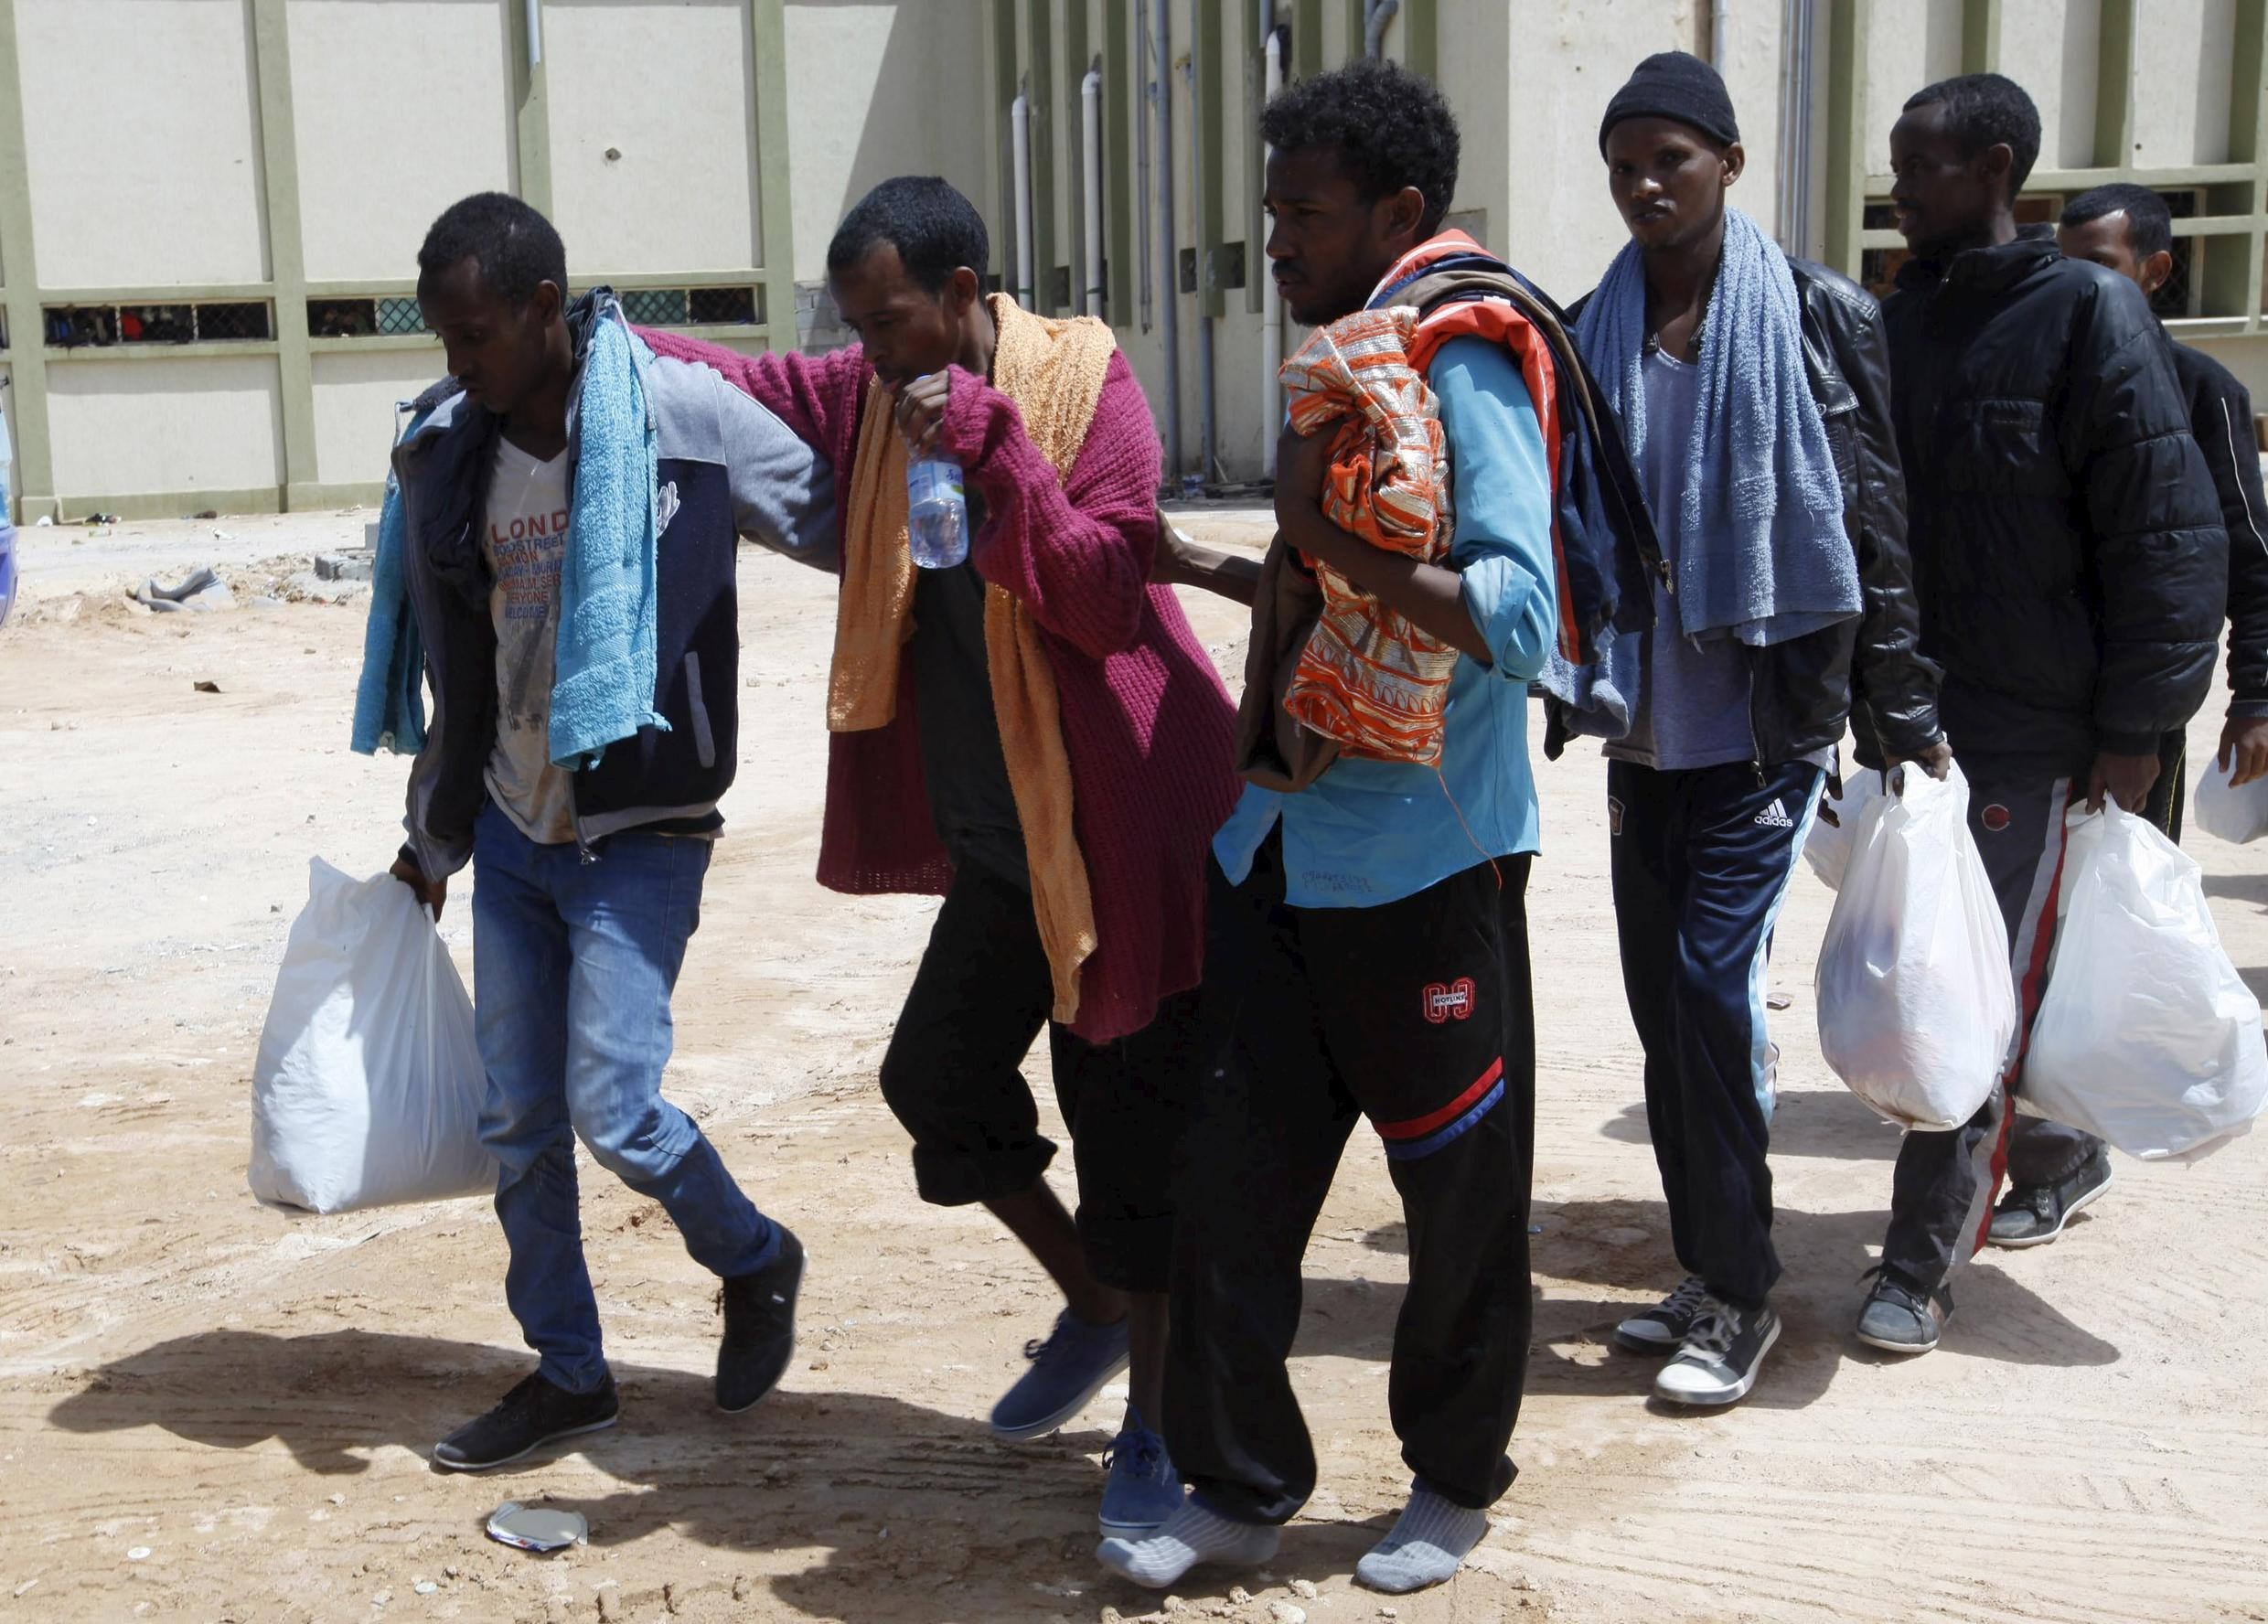 Migrants help another migrant walk to a bus bound for an immigration centre in the coastal city of Misrata, Libya, May 9, 2015.